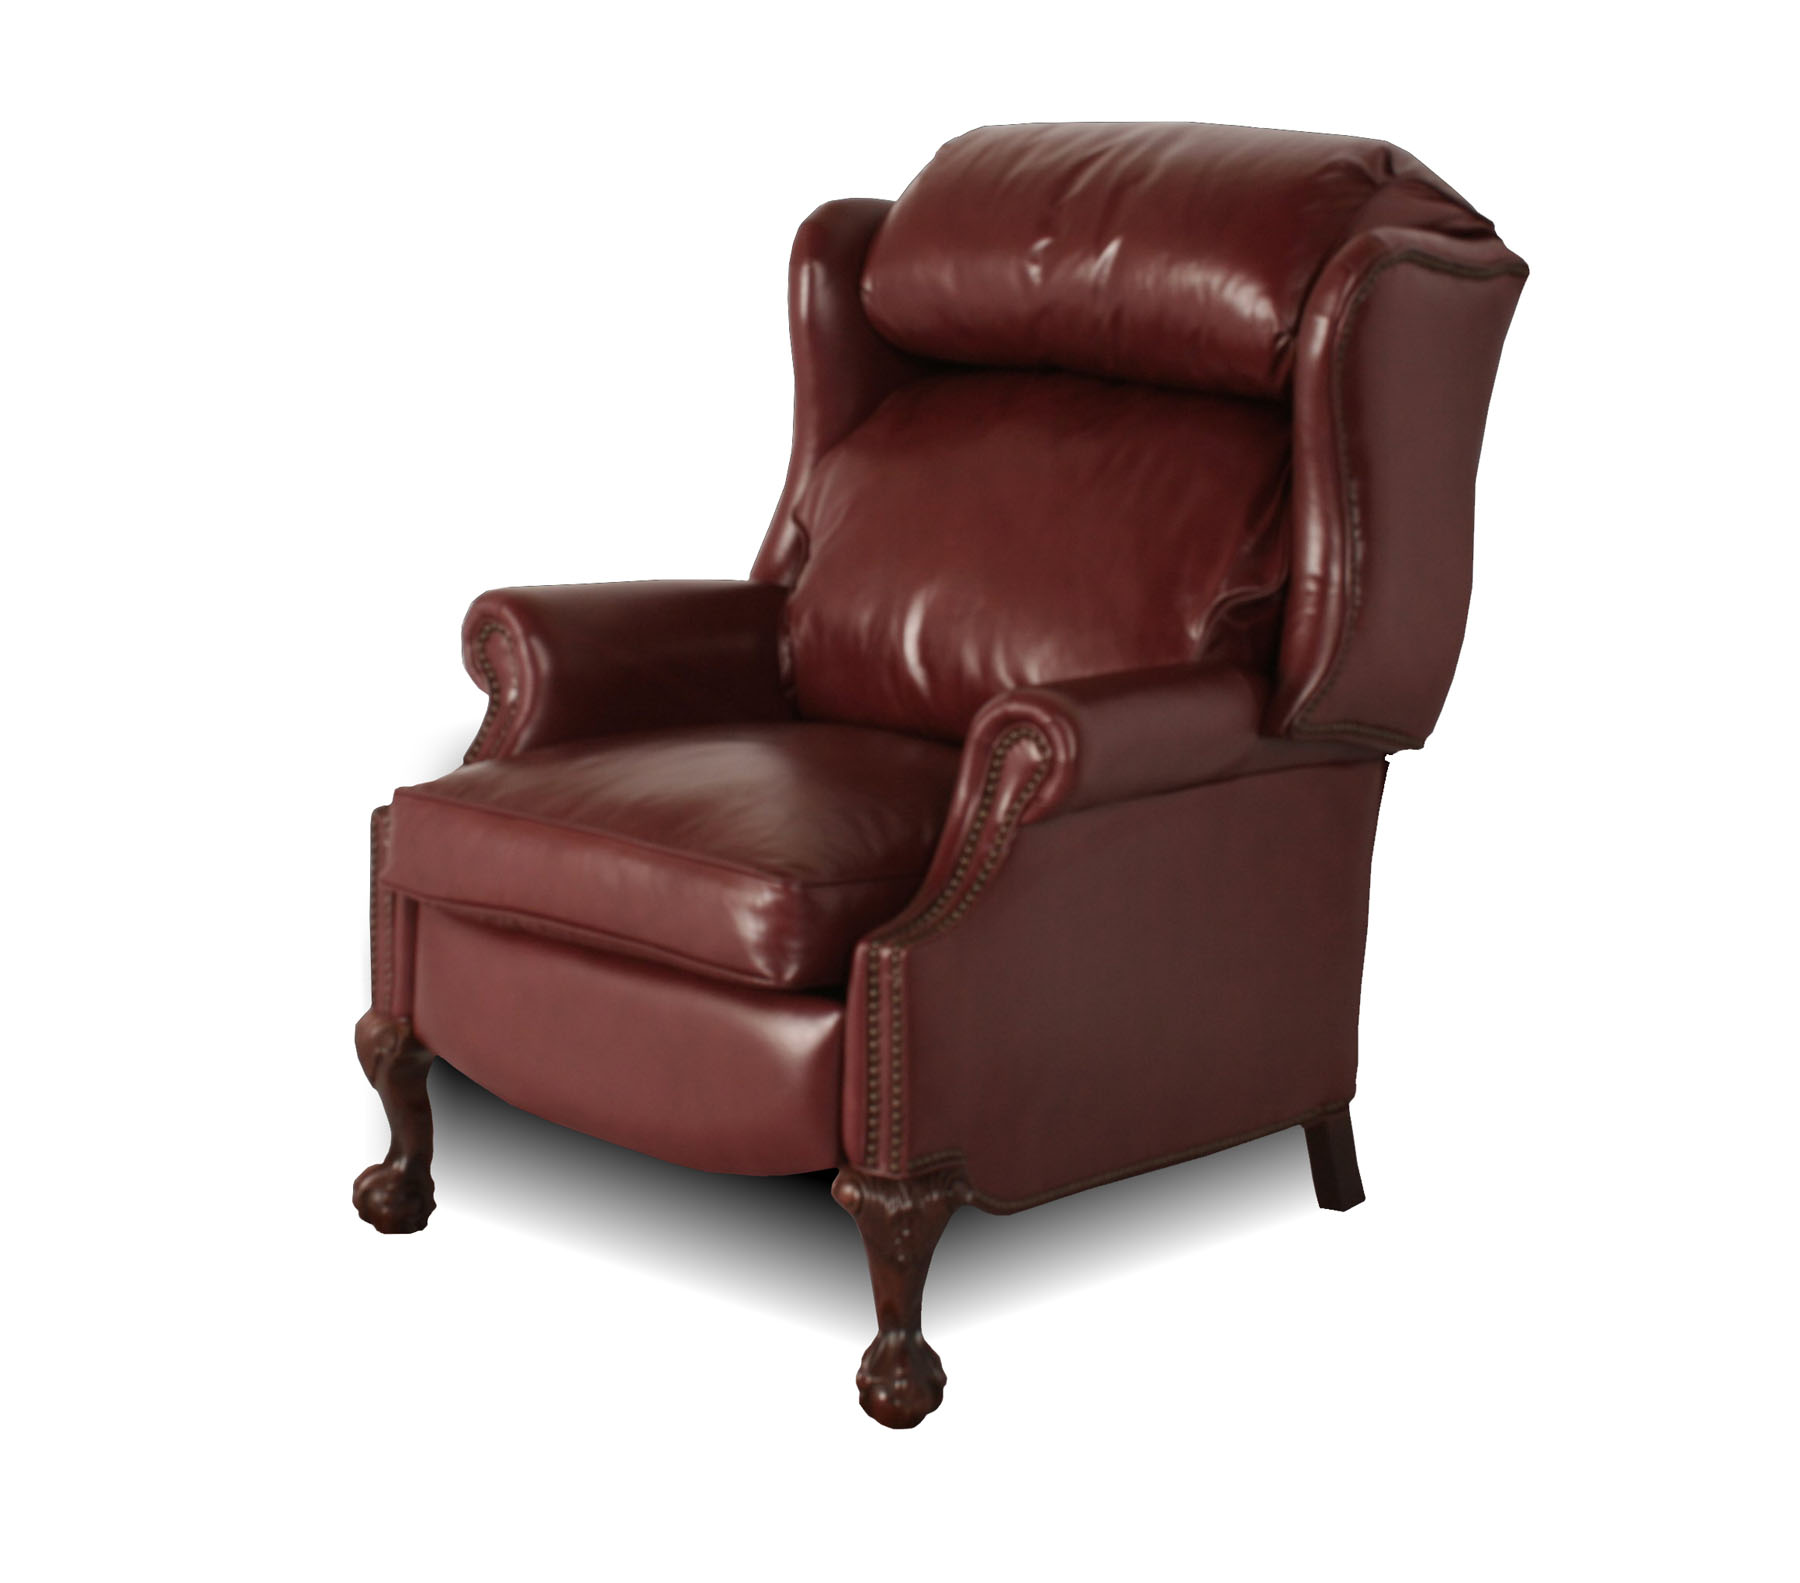 Leather wingback recliner chair wingback leather for Wing back recliner chair